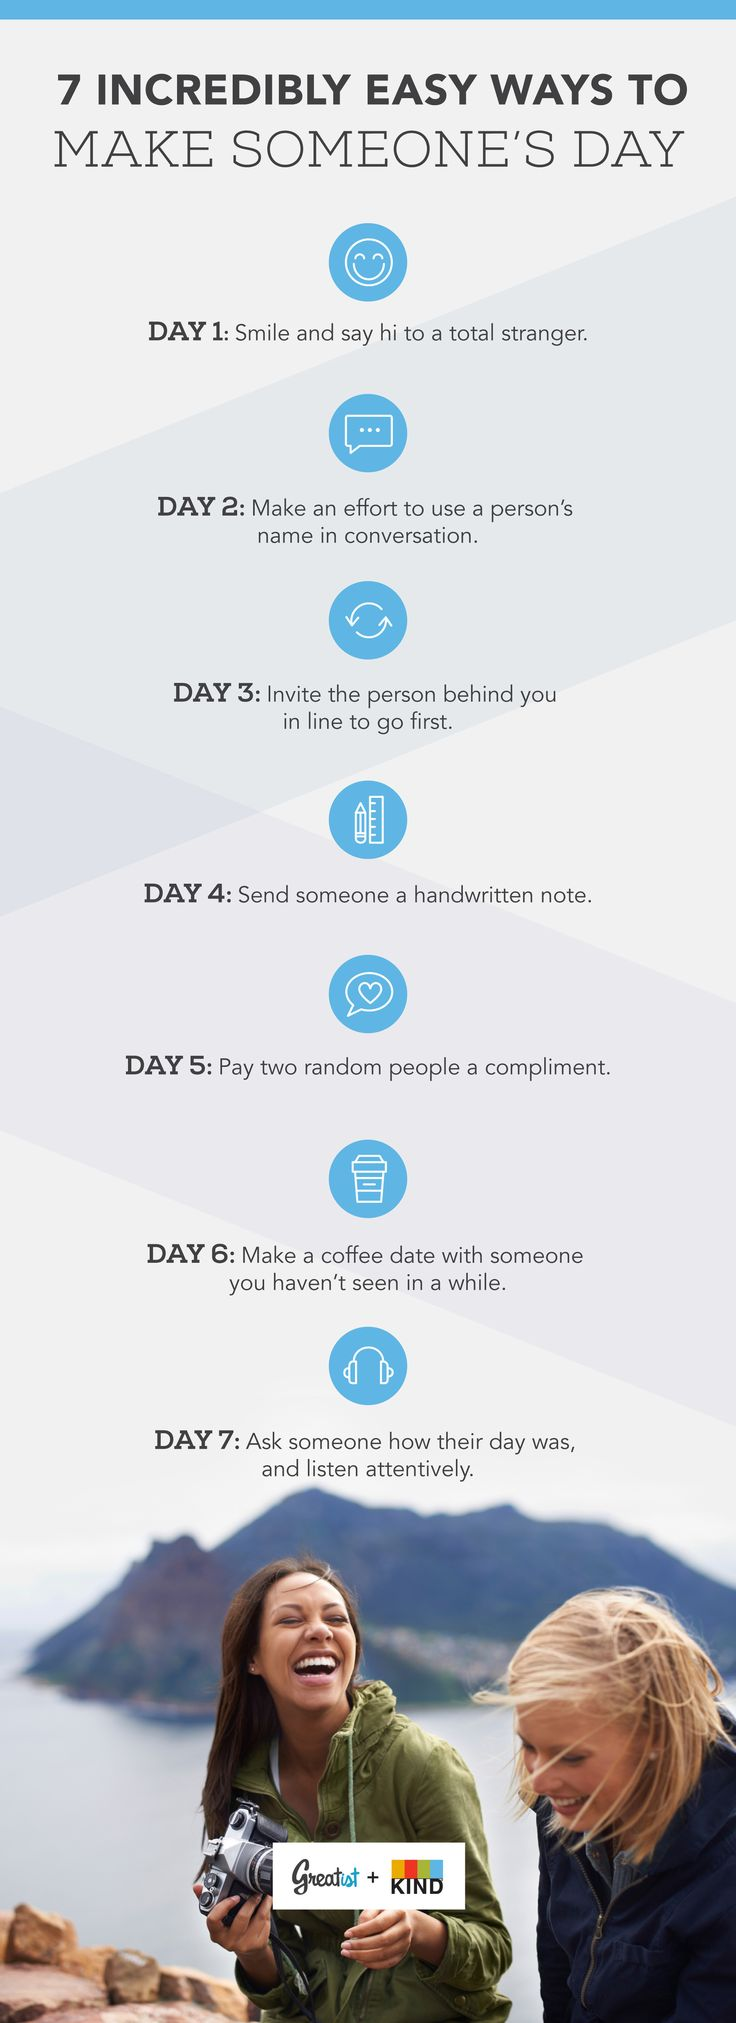 It's amazing what can happen when you quit burying your face in your phone. #letsreconnect #healthy #relationships http://greatist.com/connect/easy-ways-to-make-someones-day